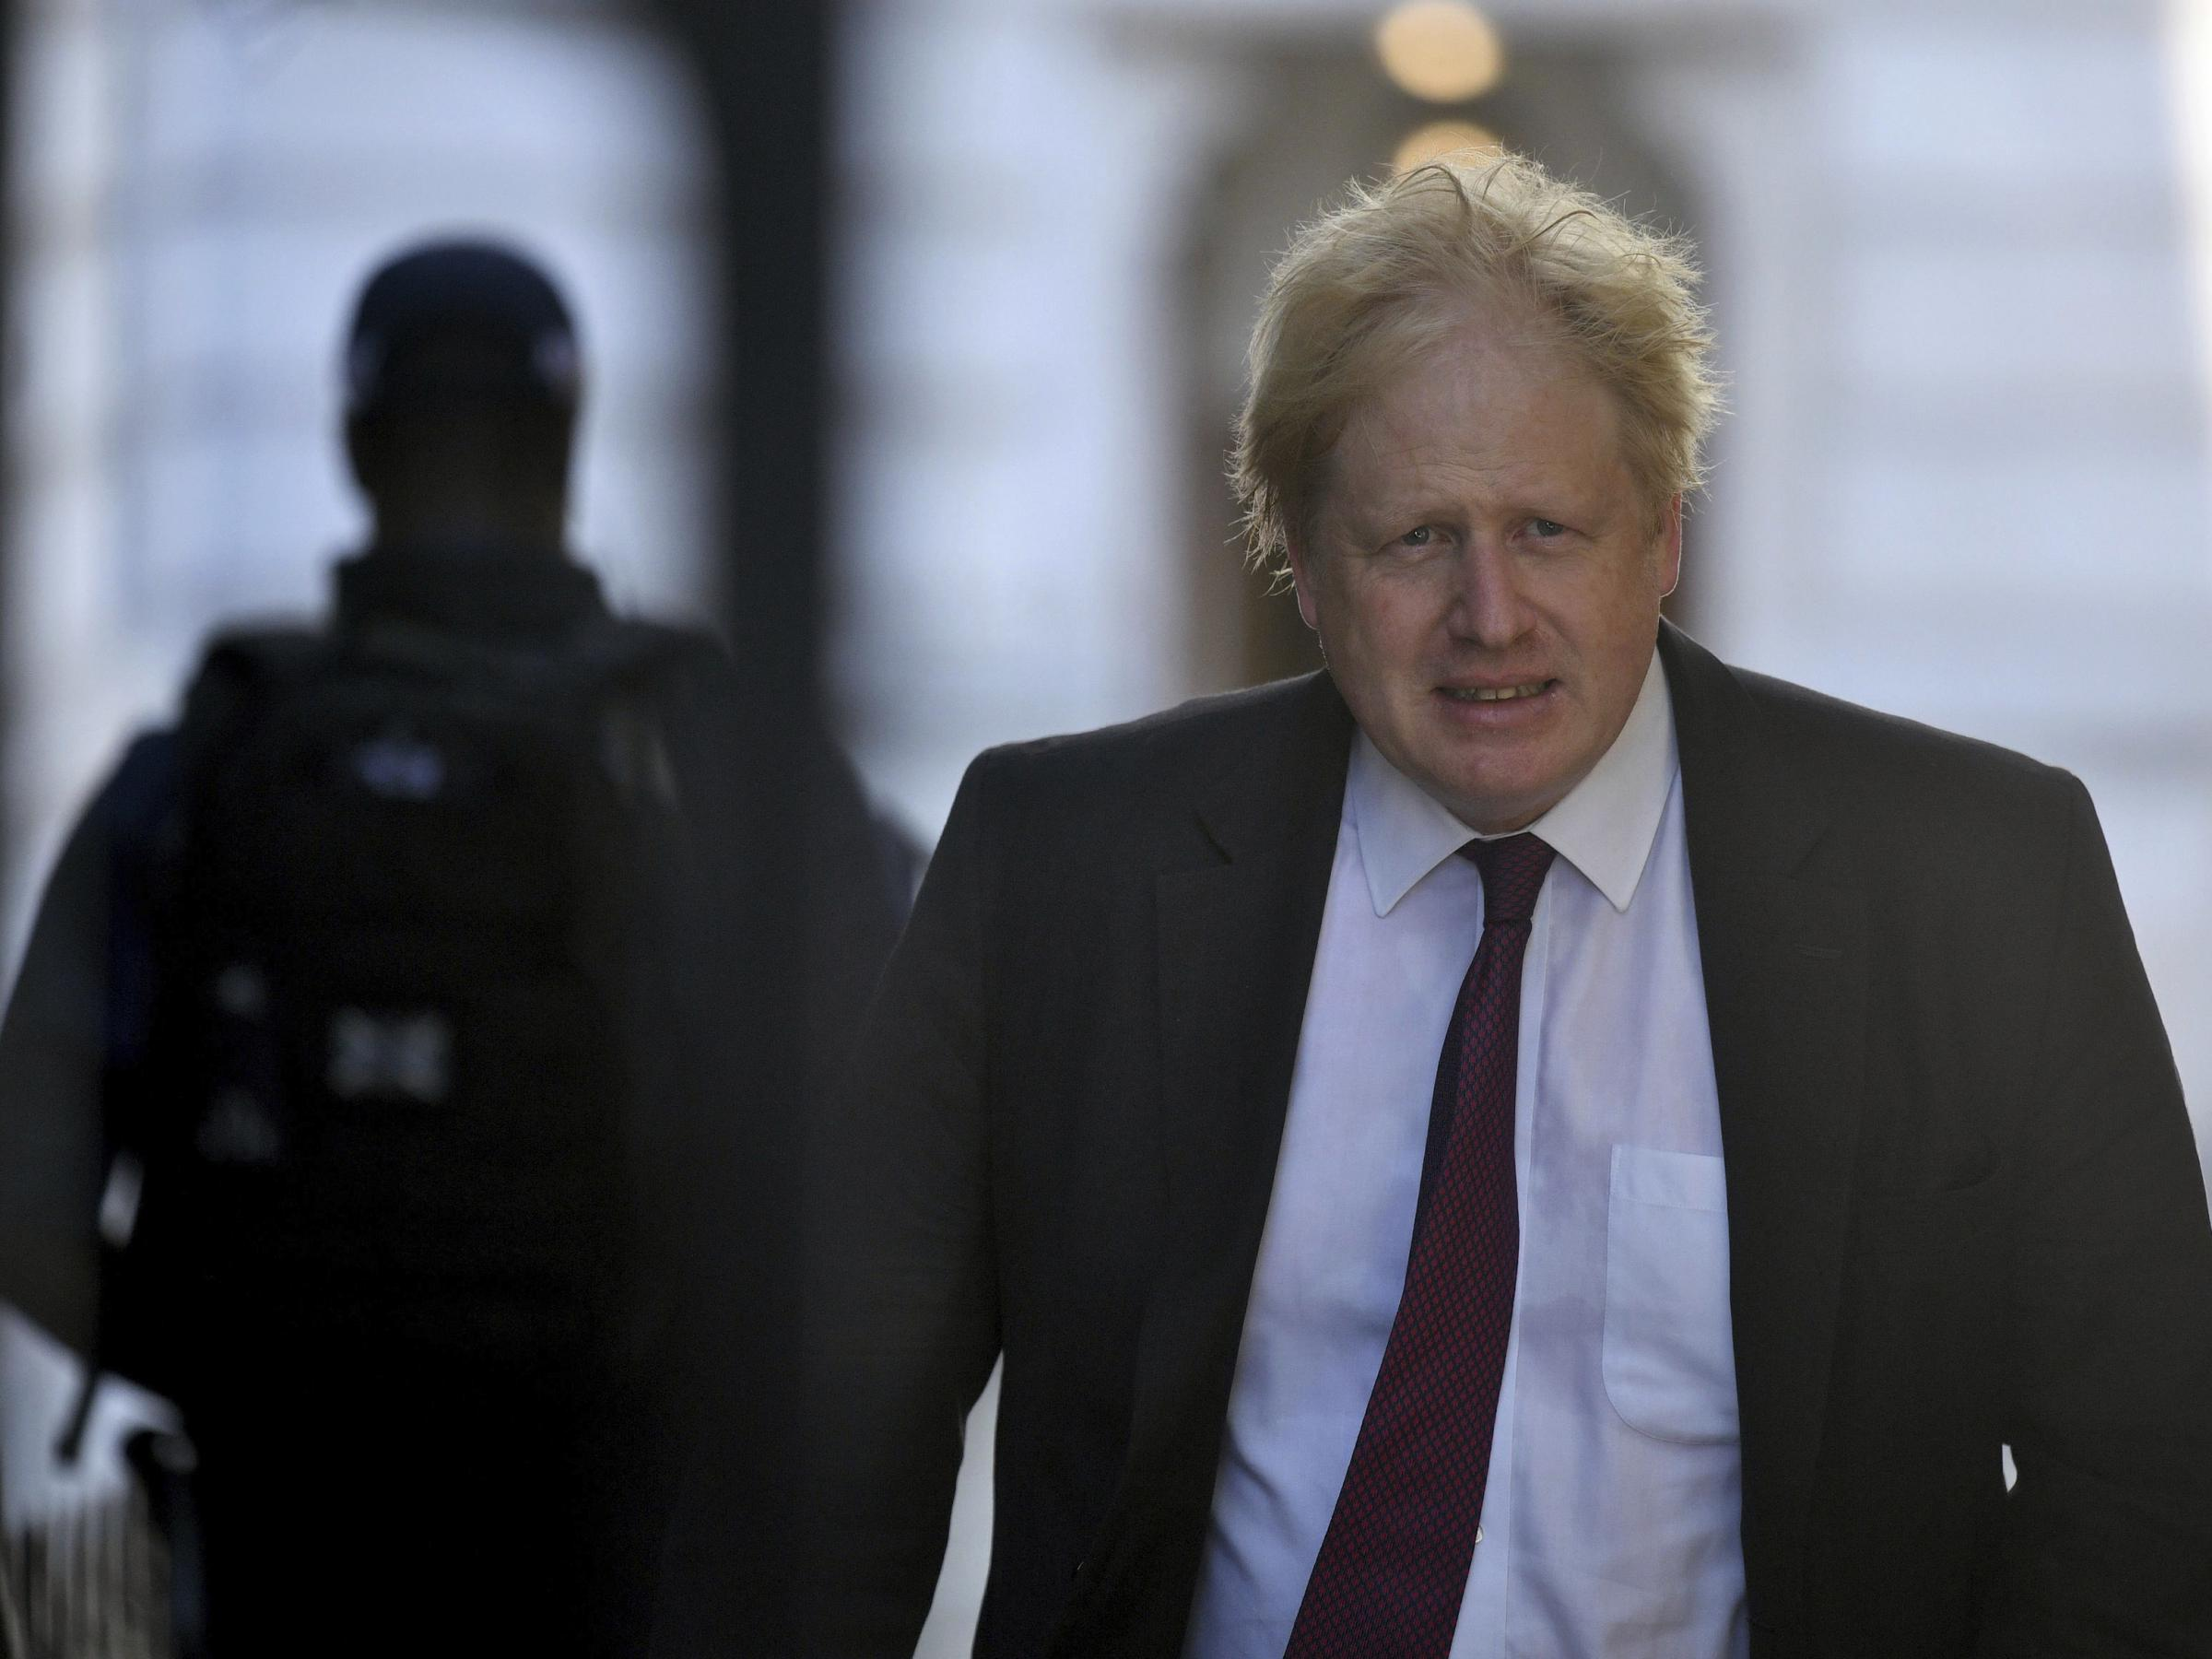 Britain's Foreign Secretary Boris Johnson who resigned this week leaves the Foreign Office on his way to Downing Street for a Cabinet meeting in London on Tuesday